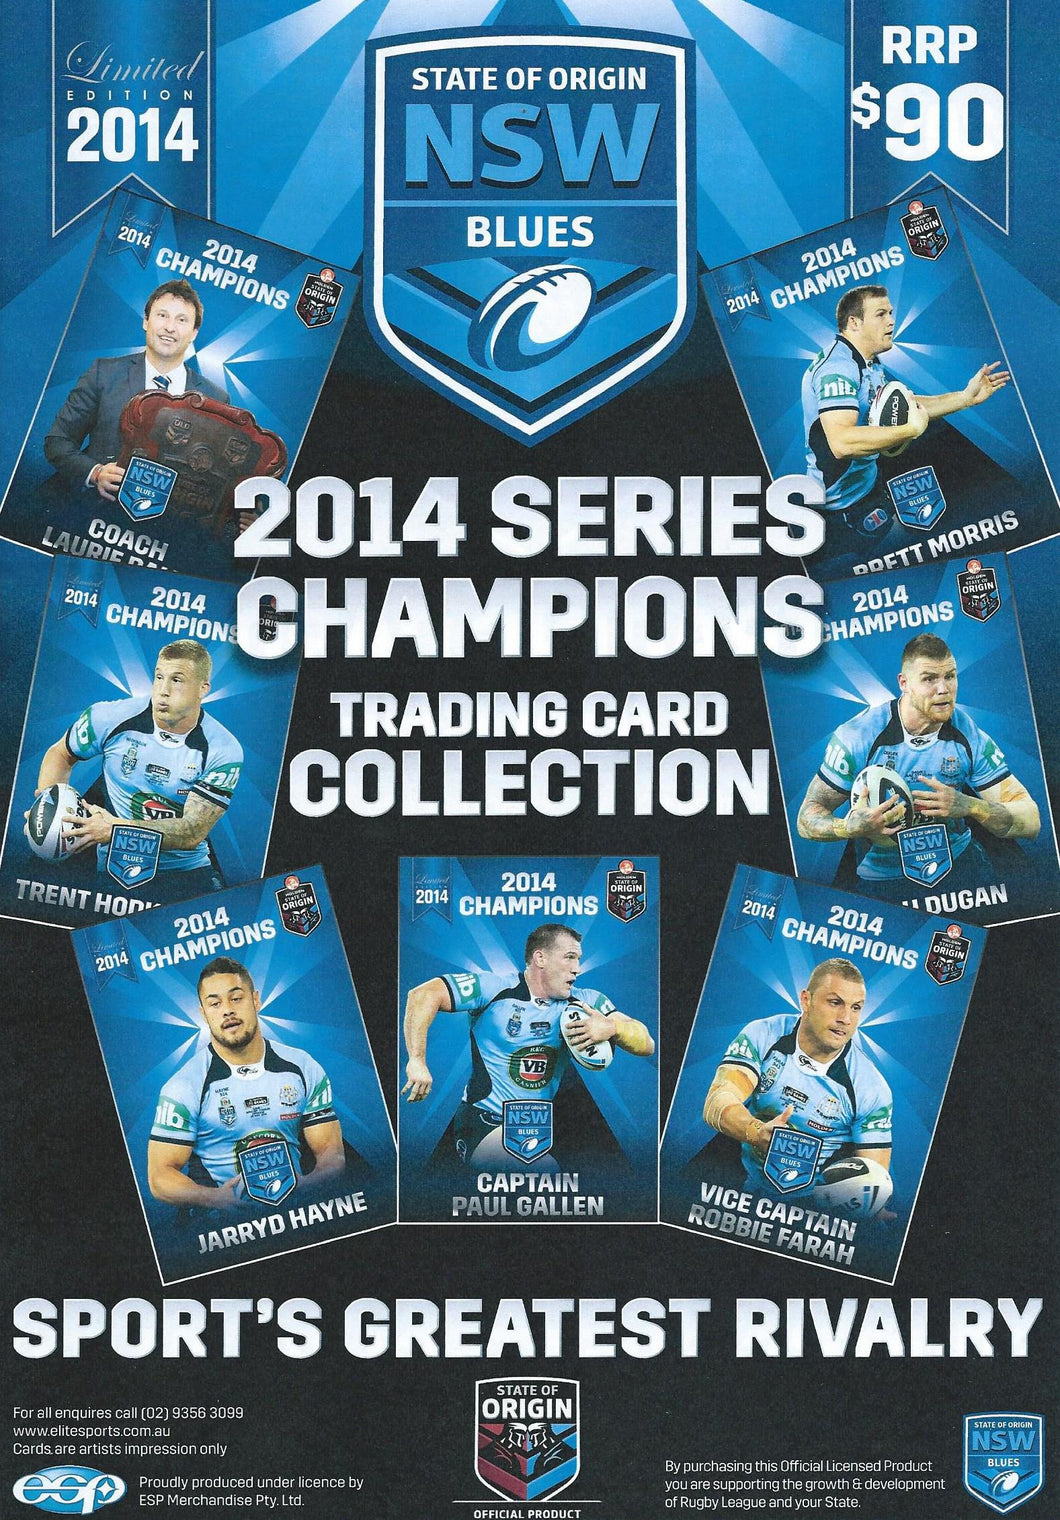 2014 State of Origin, NSW Blues, Series Champions Card Set